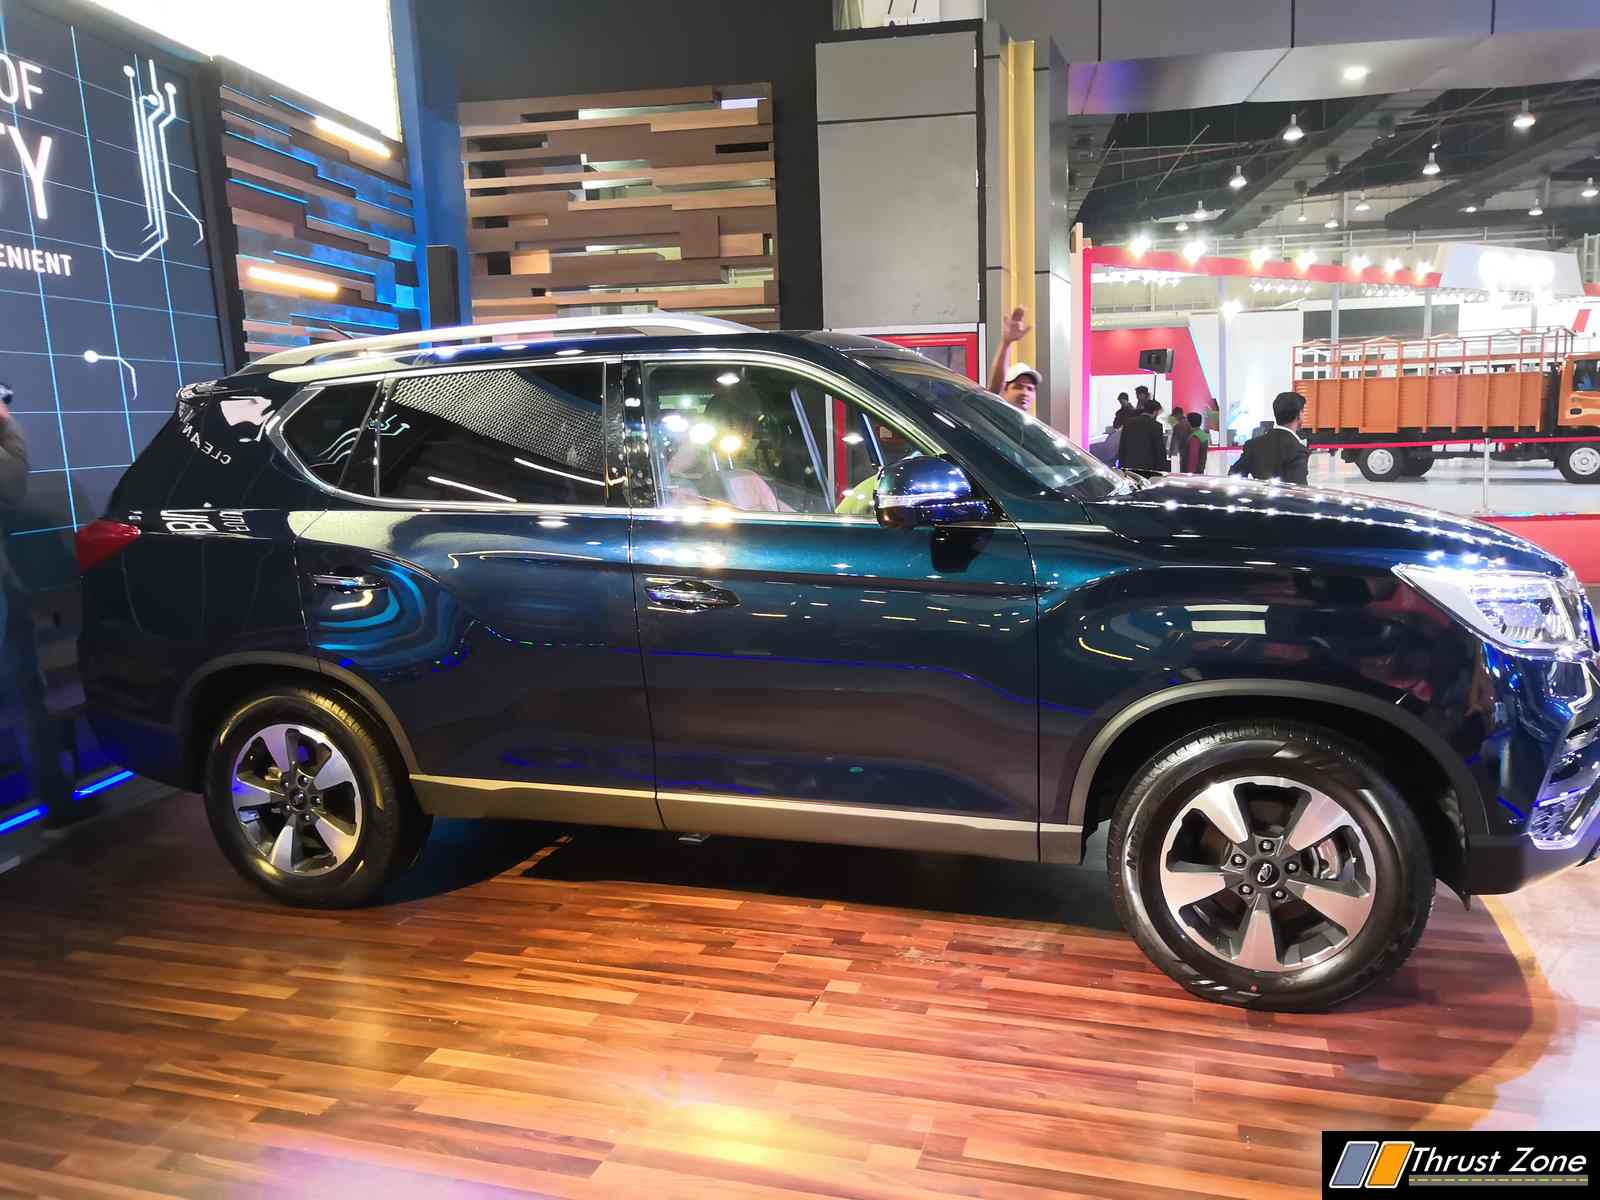 2018 Mahindra Rexton Revealed at Auto Expo 2018